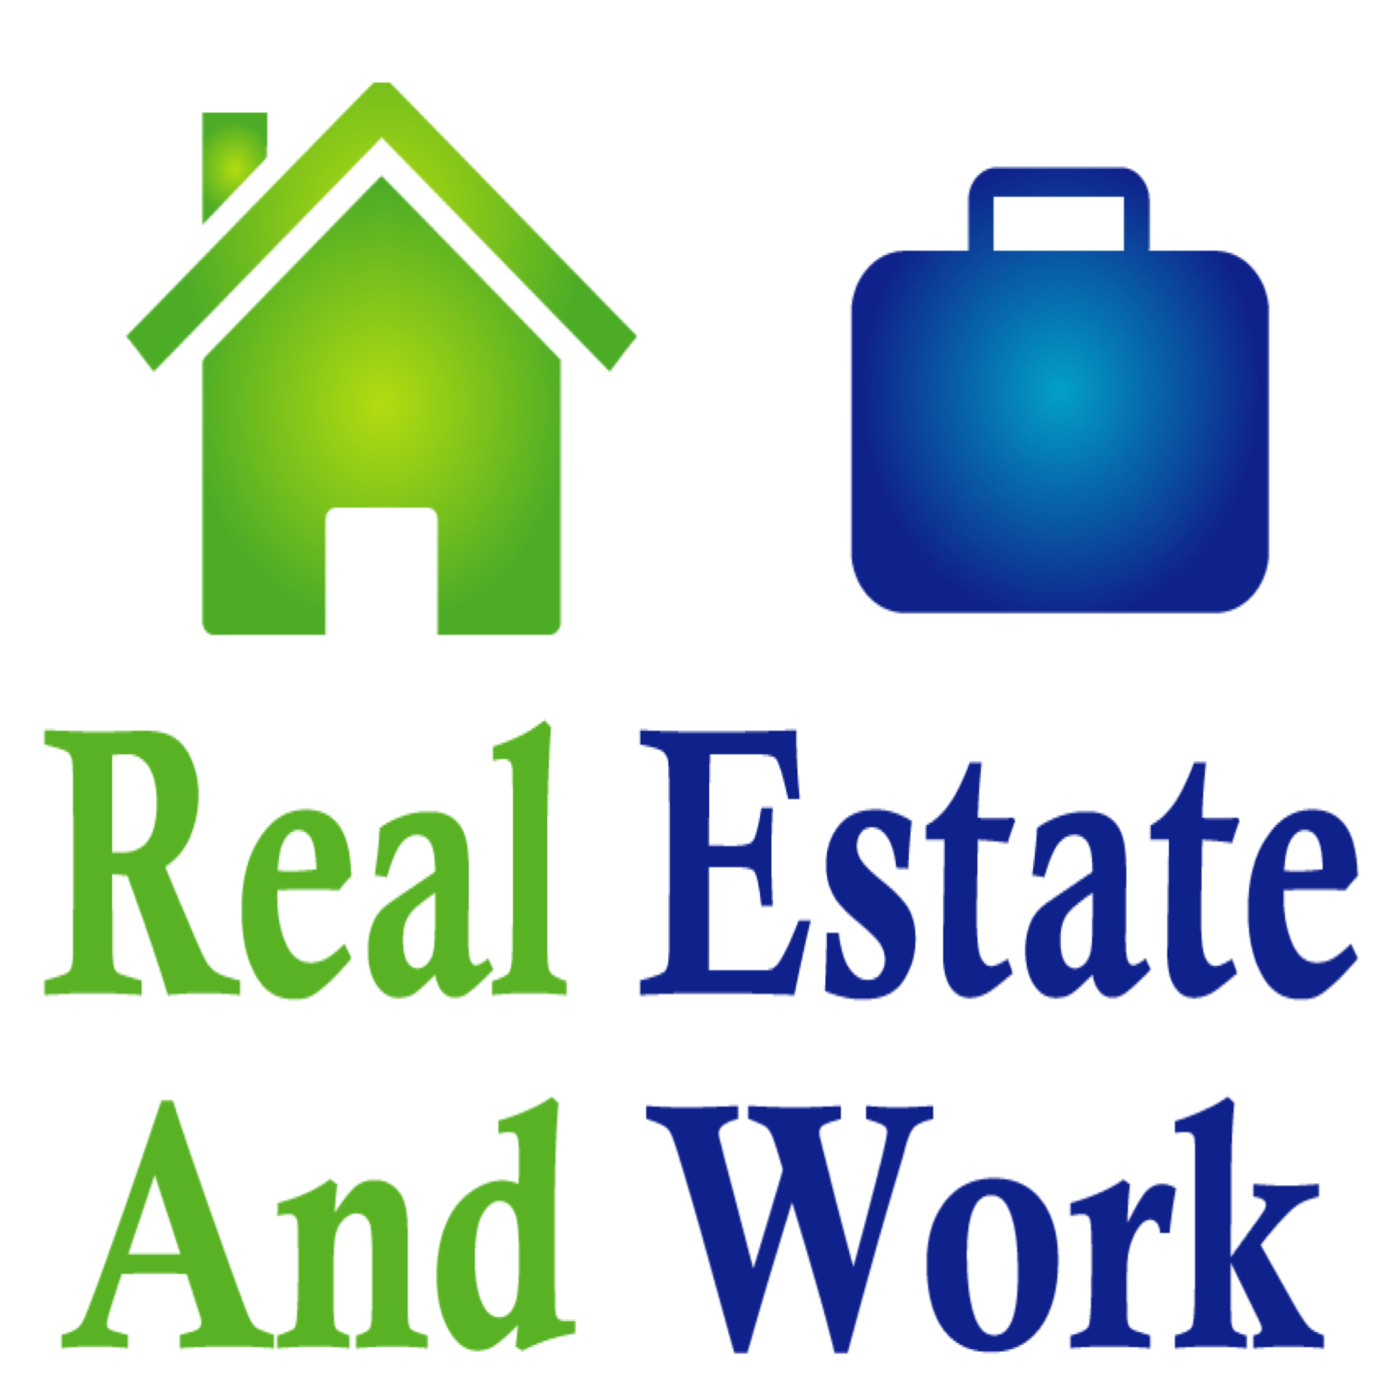 Real Estate And Work